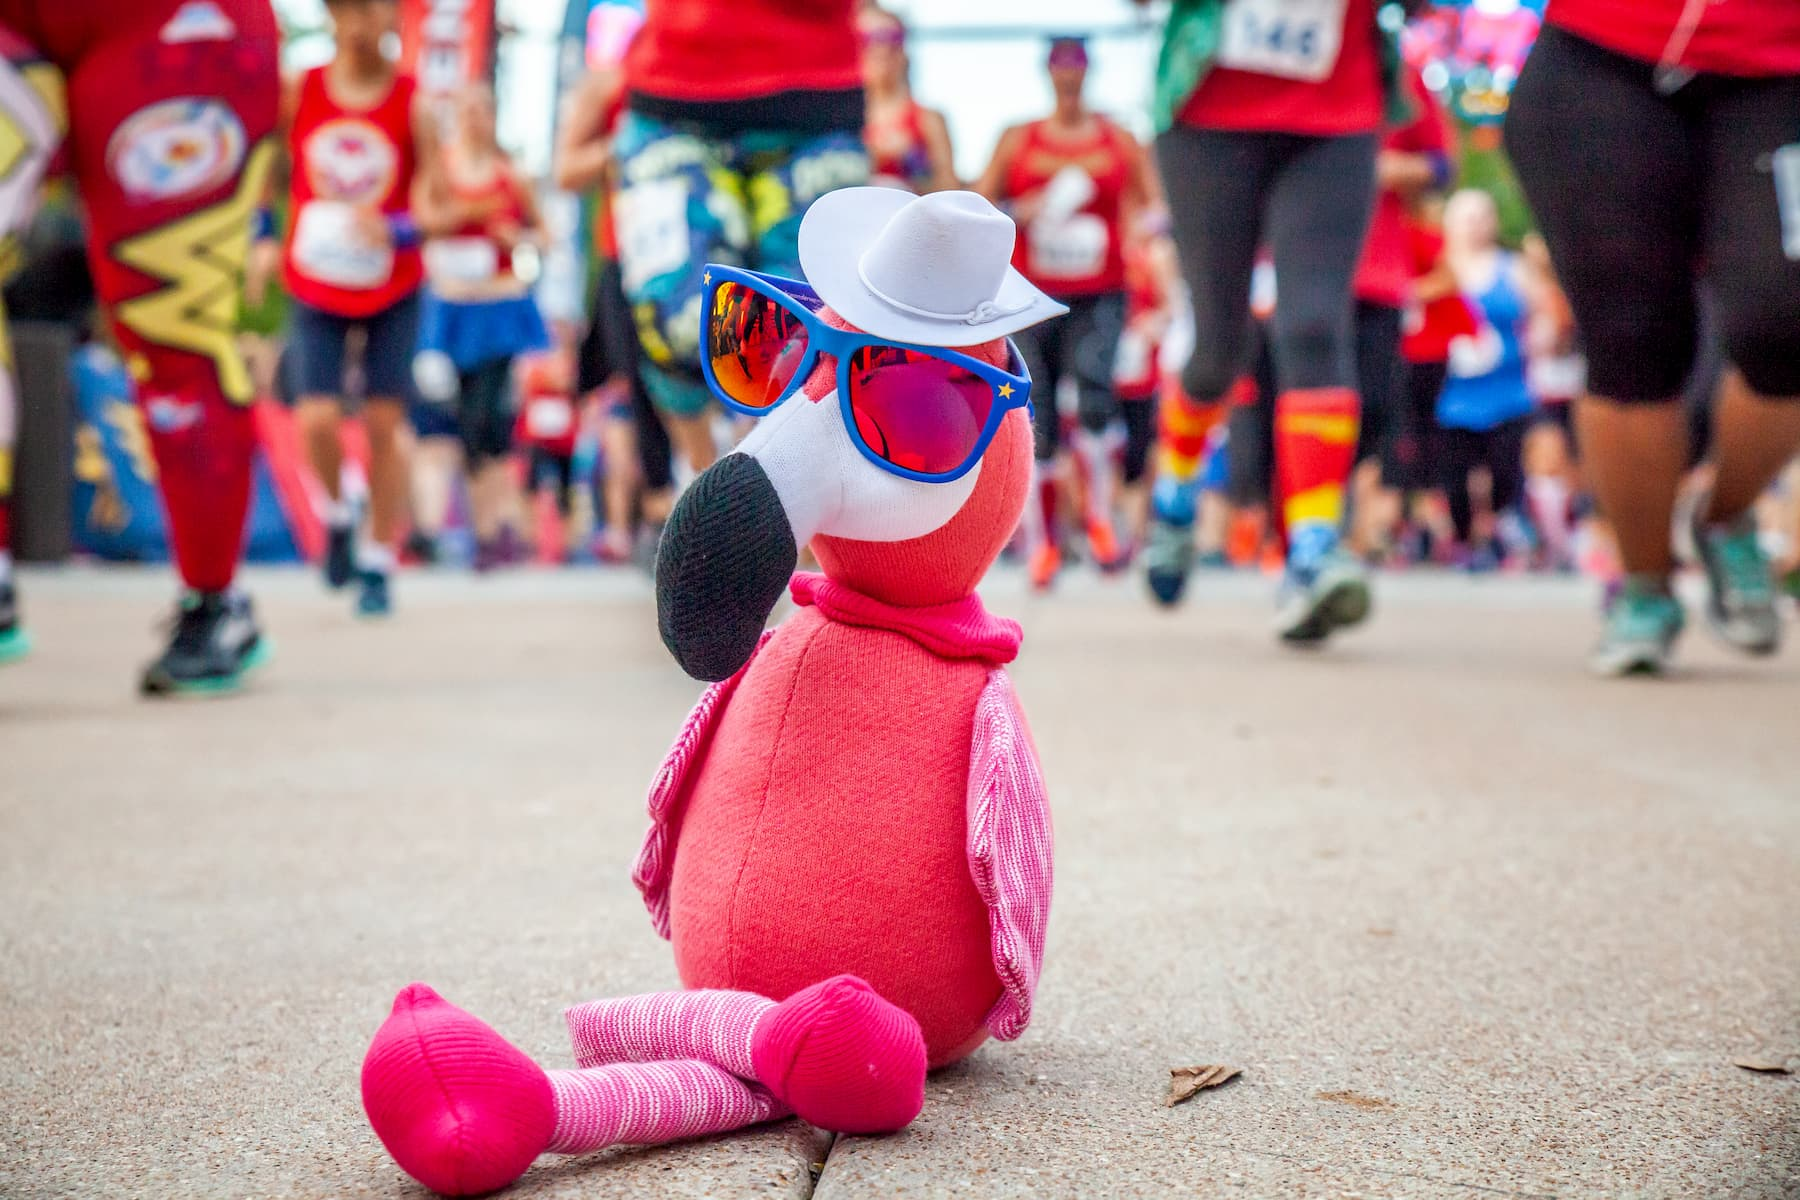 goodr CEO carl the flamingo at a running race wearing a hat and sunglasses